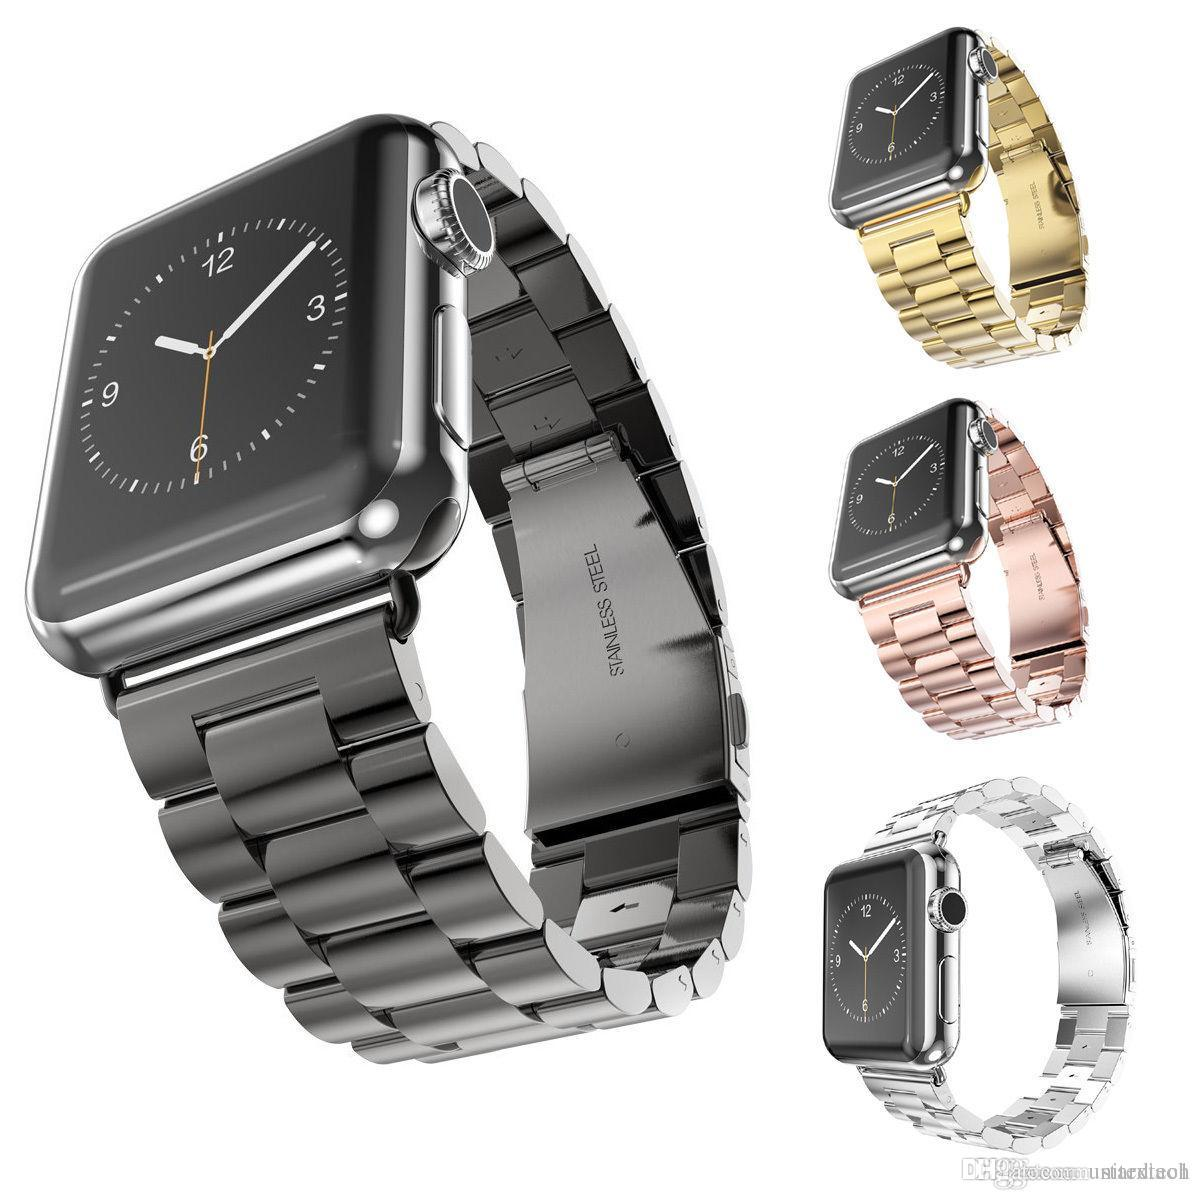 حزام الساعة من الفولاذ المقاوم للصدأ لـ iWatch Apple Watch Band 30mm 40mm 42mm 44mm Strap Link Bracelet Accessories series 4 3 2 1